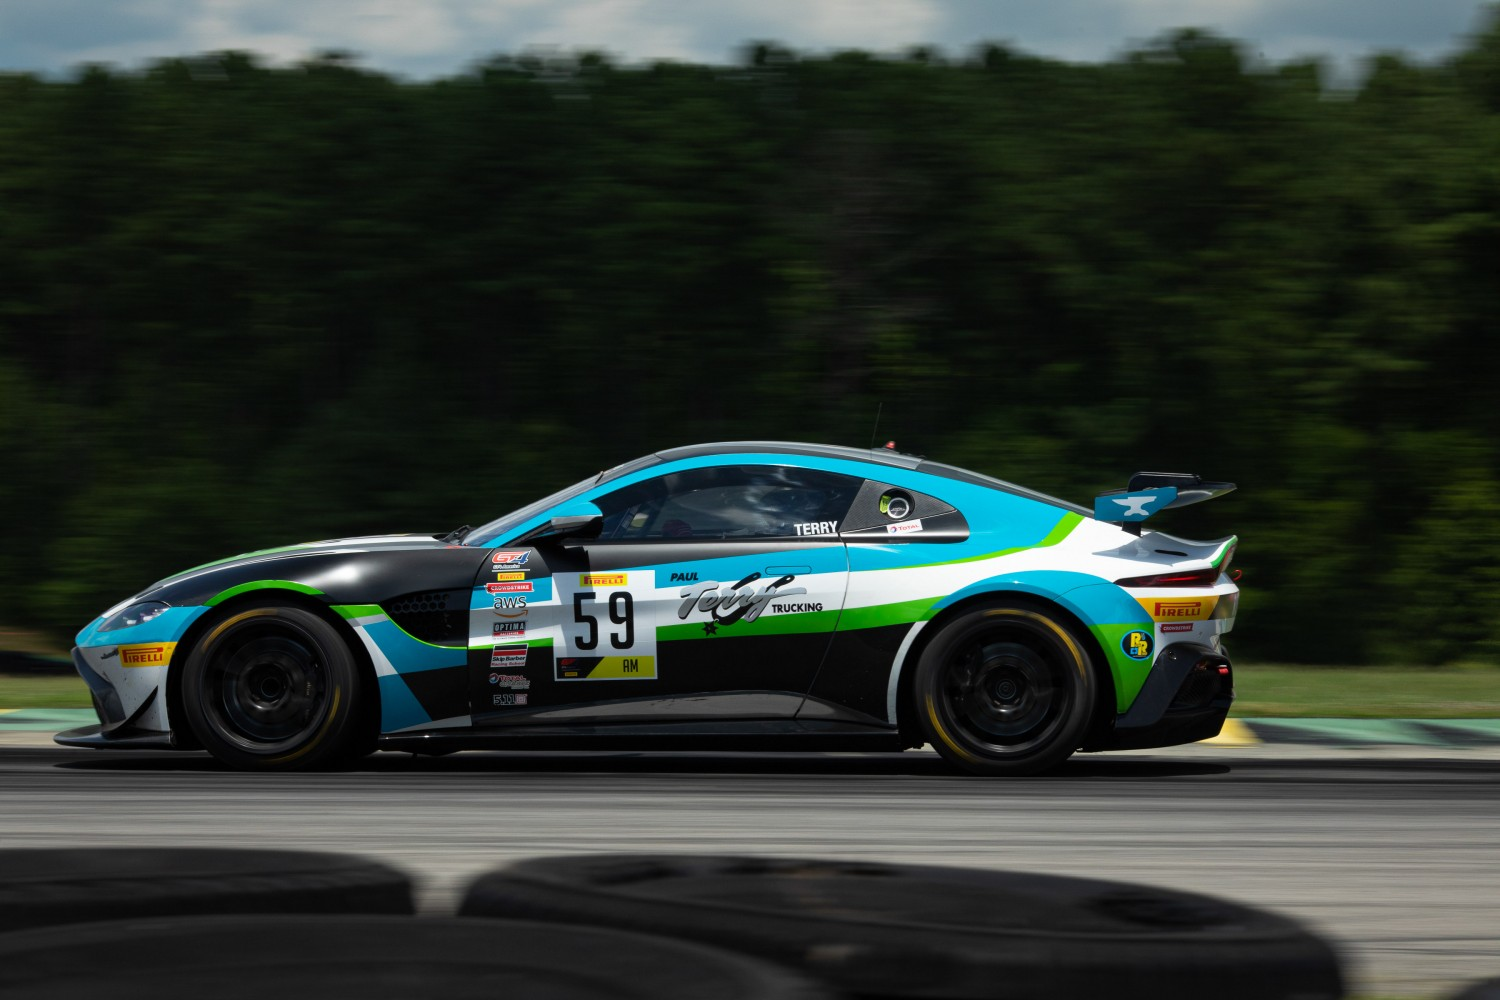 #59 GT4 Sprint, Am, Rearden Racing, Paul Terry, Aston Martin Vantage GT4\, SRO VIR 2020, Alton VA  |